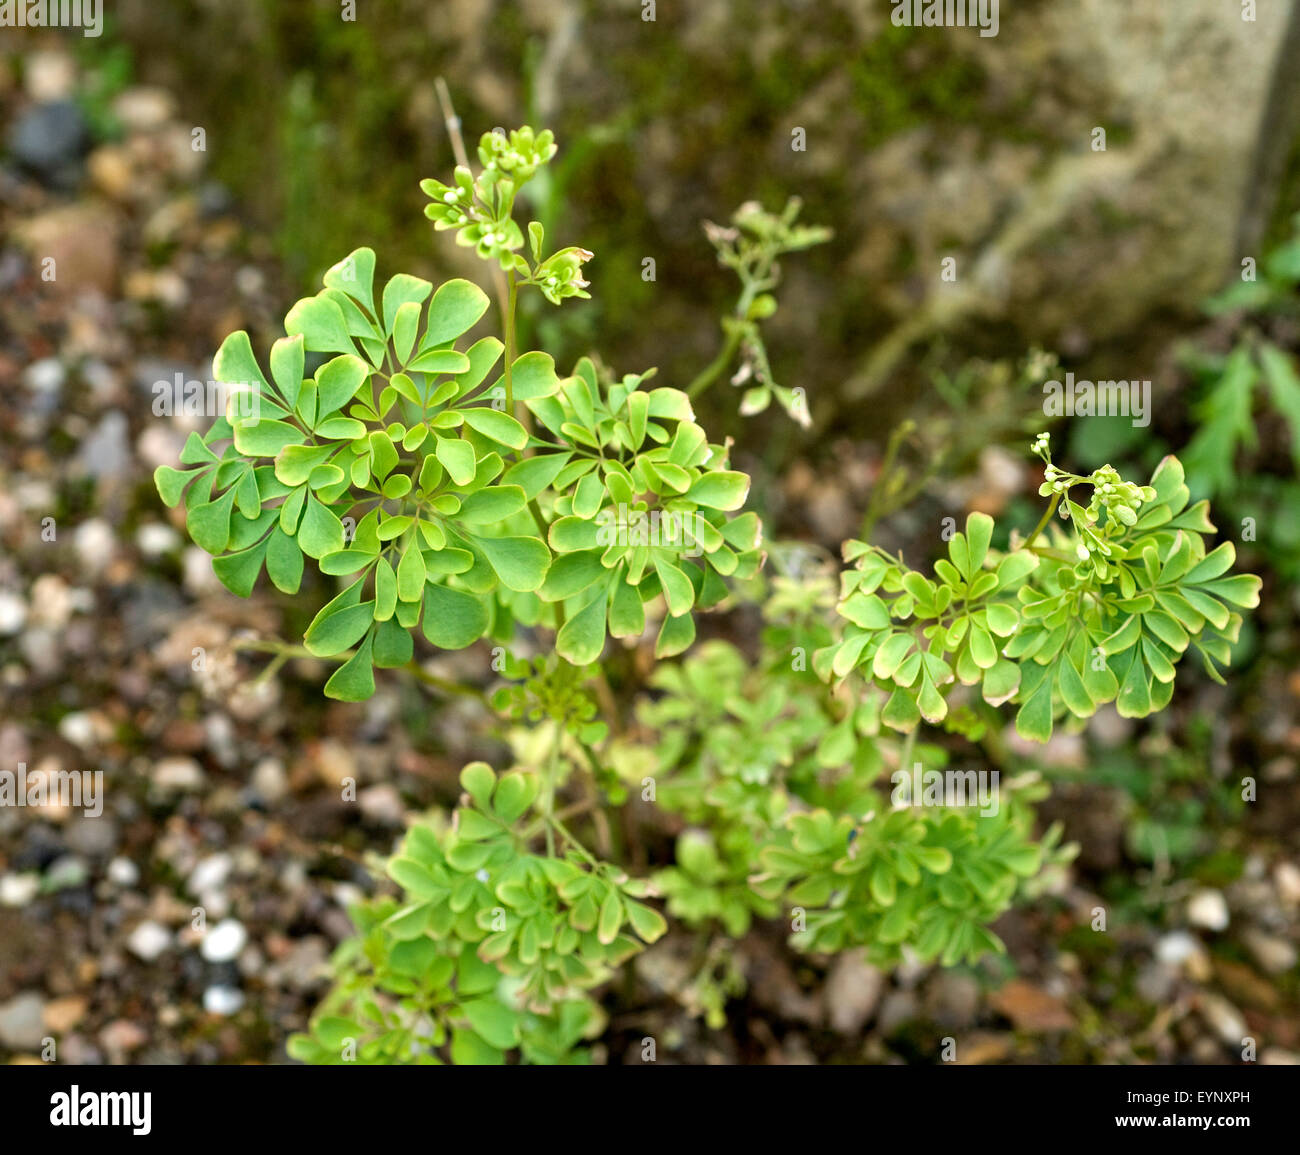 Asiatische Moringa Heimische Wildpflanze Stock Photos Heimische Wildpflanze Stock